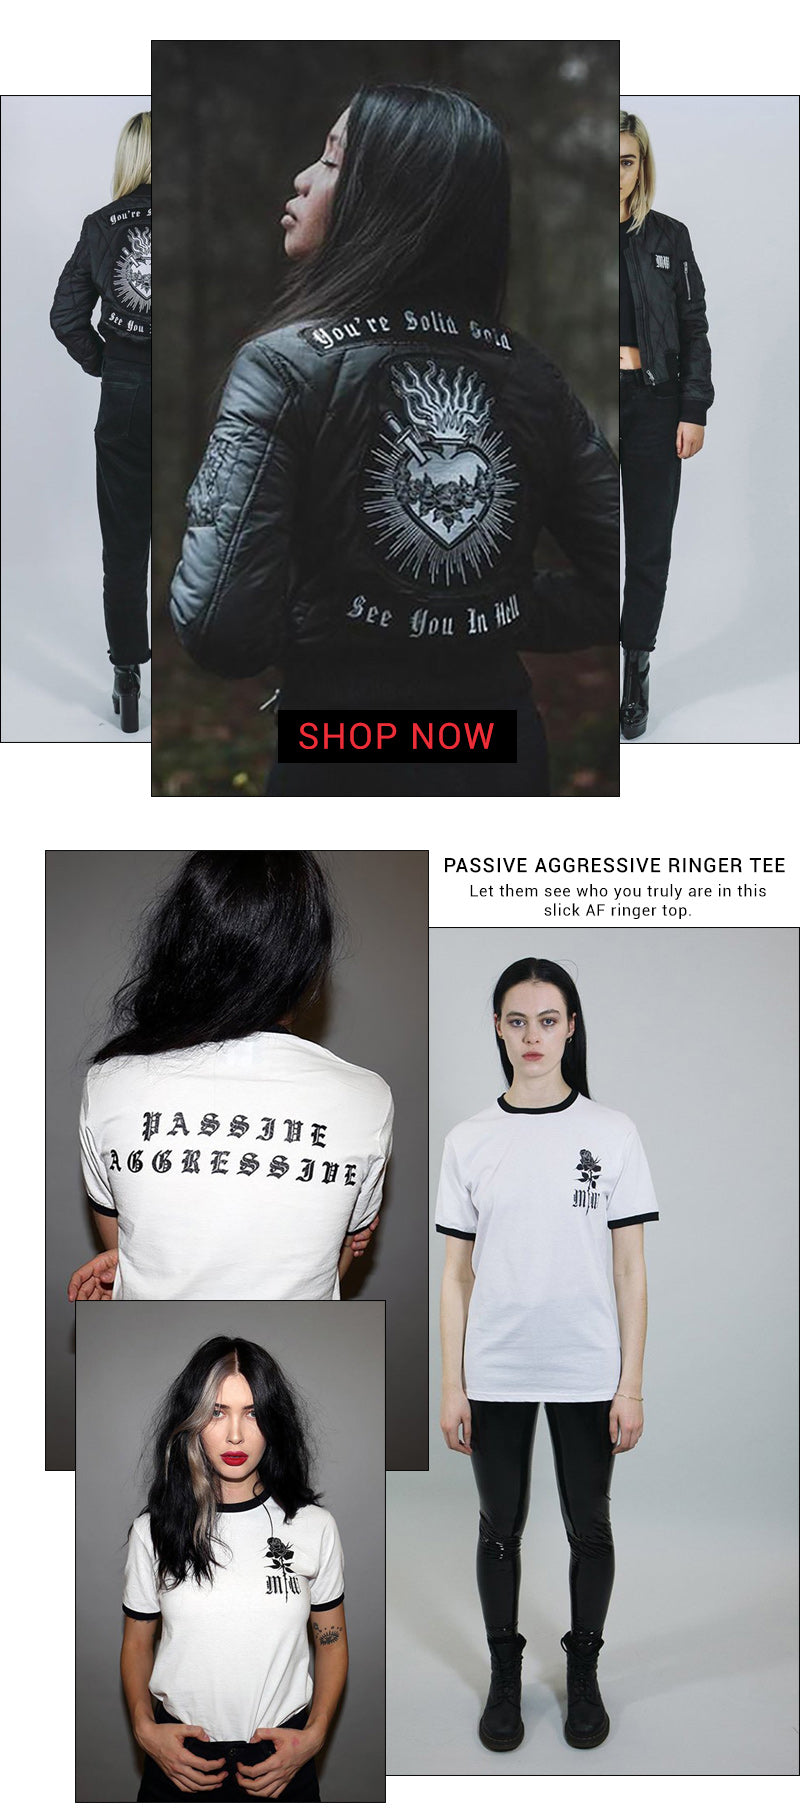 mary wyatt see you in hell jacket and passive aggressive ringer tee